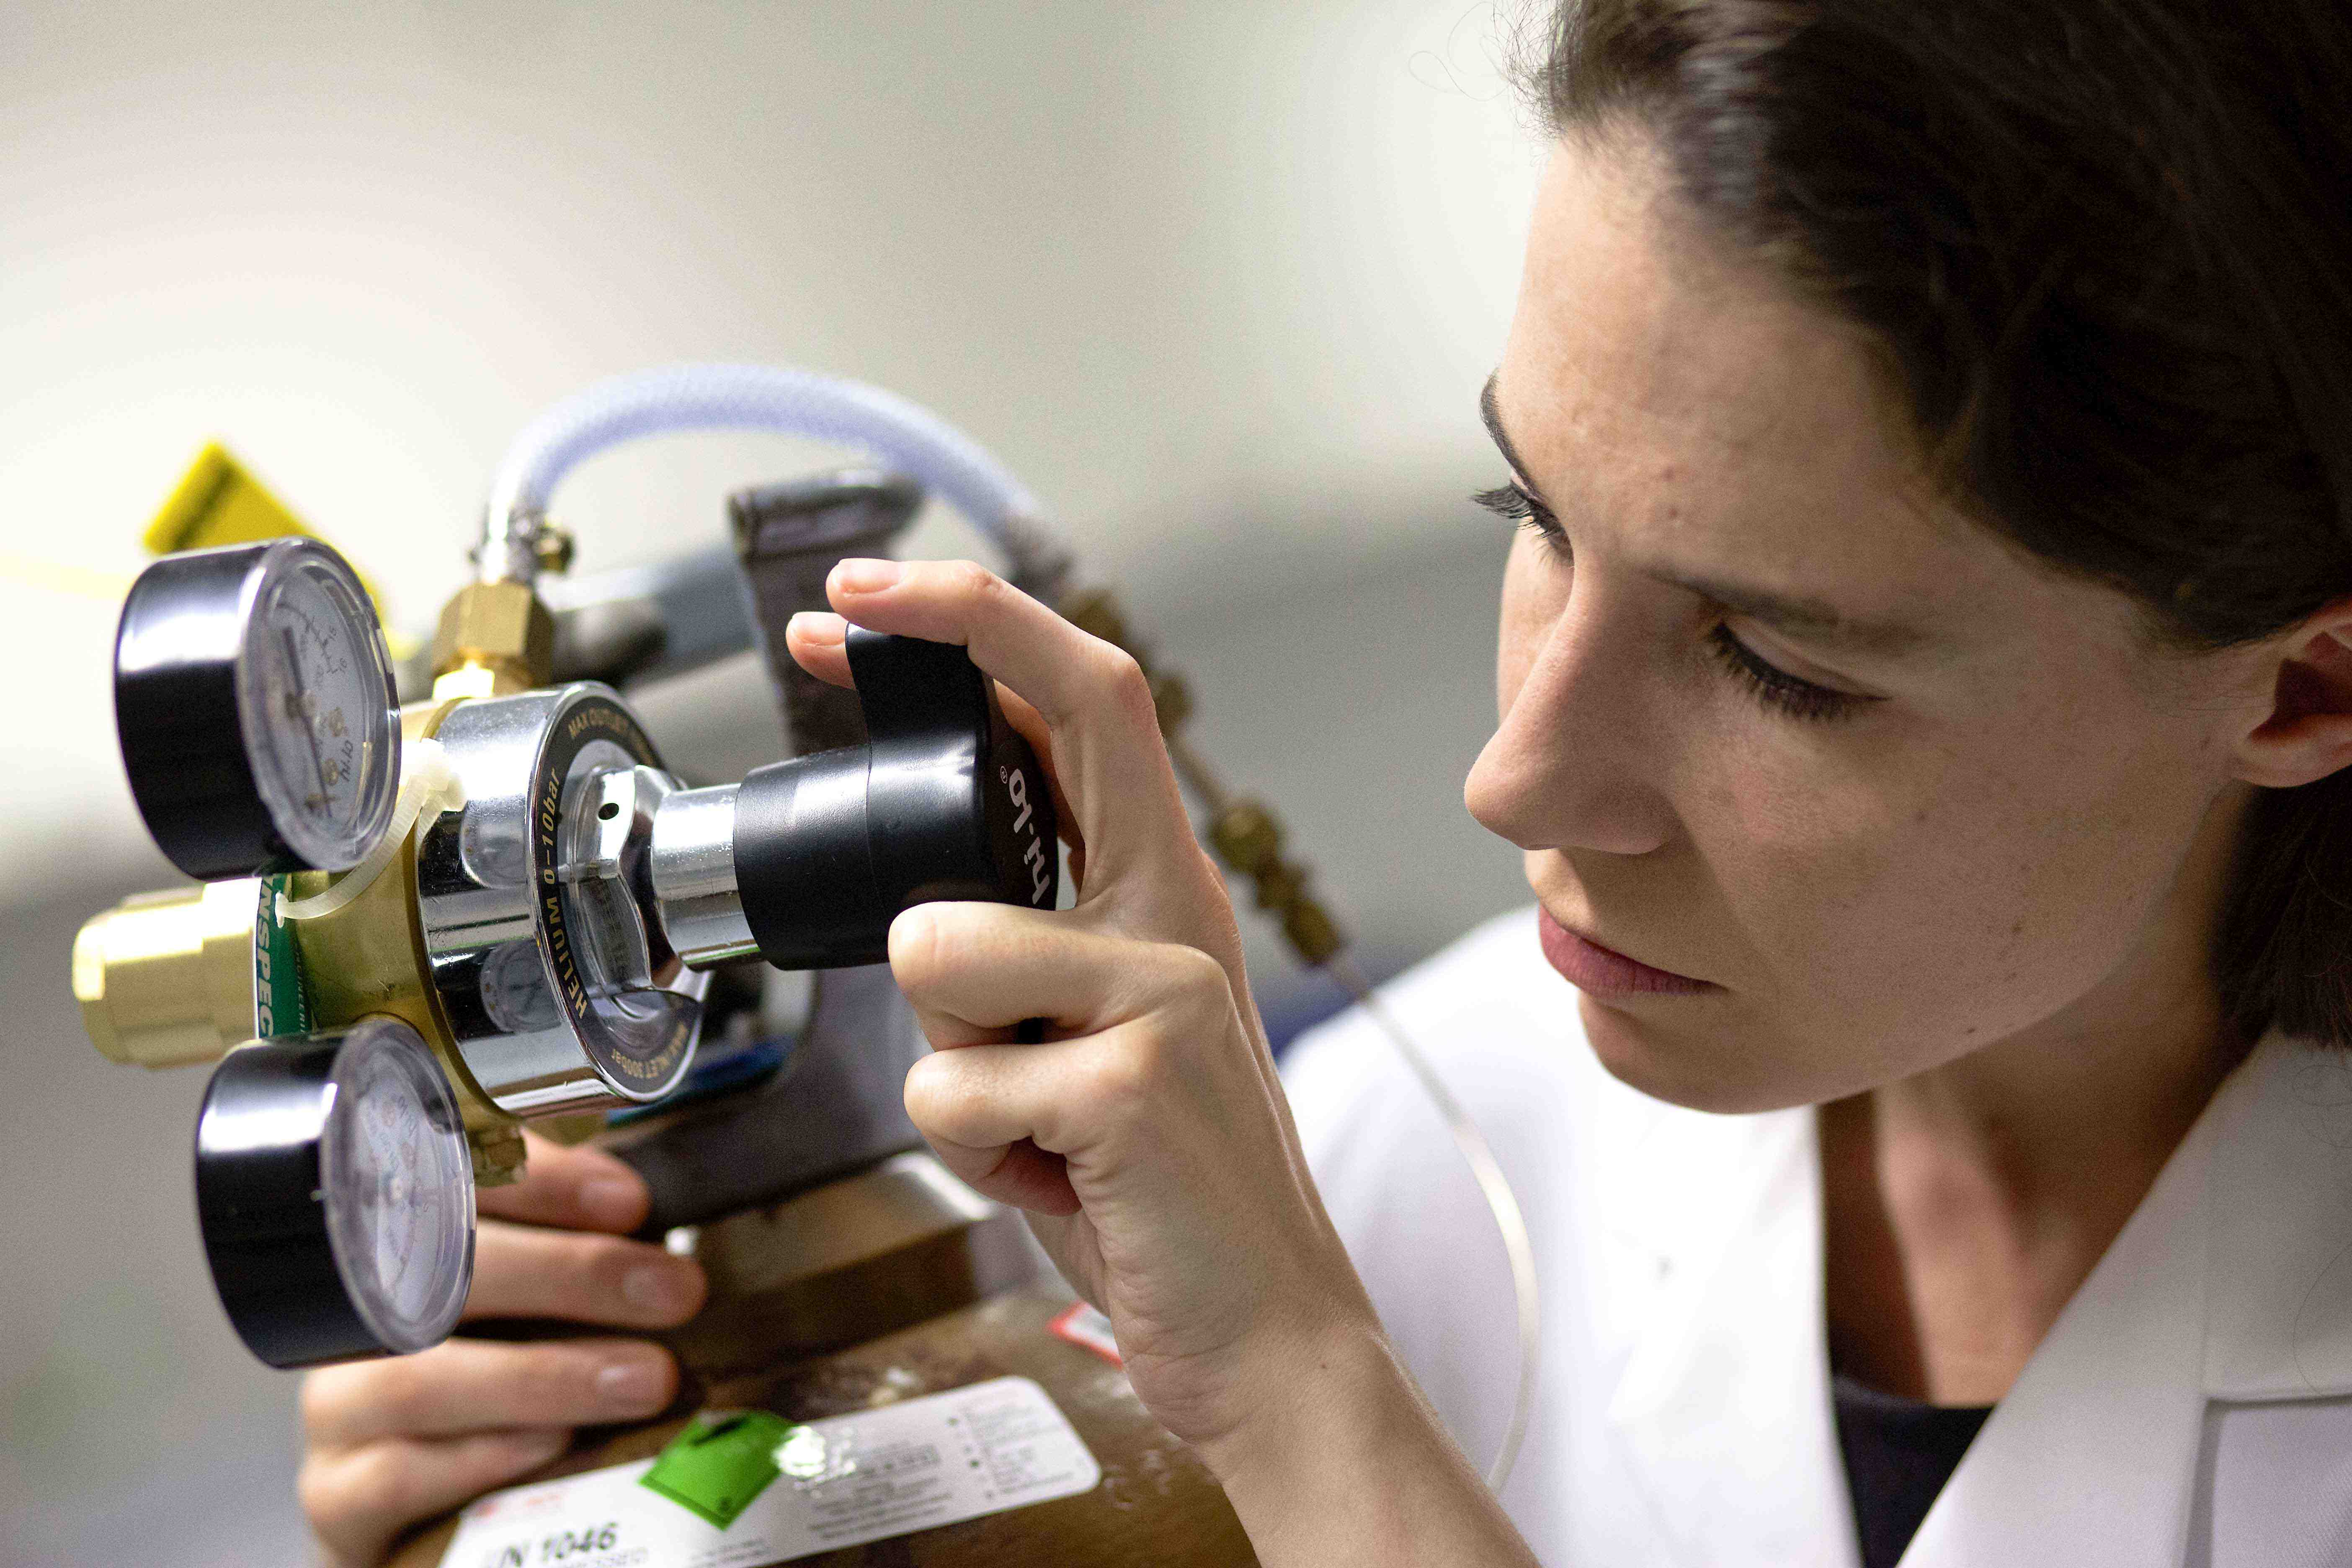 Queen's Anniversary Prize for Oxford's innovation in biomedical engineering